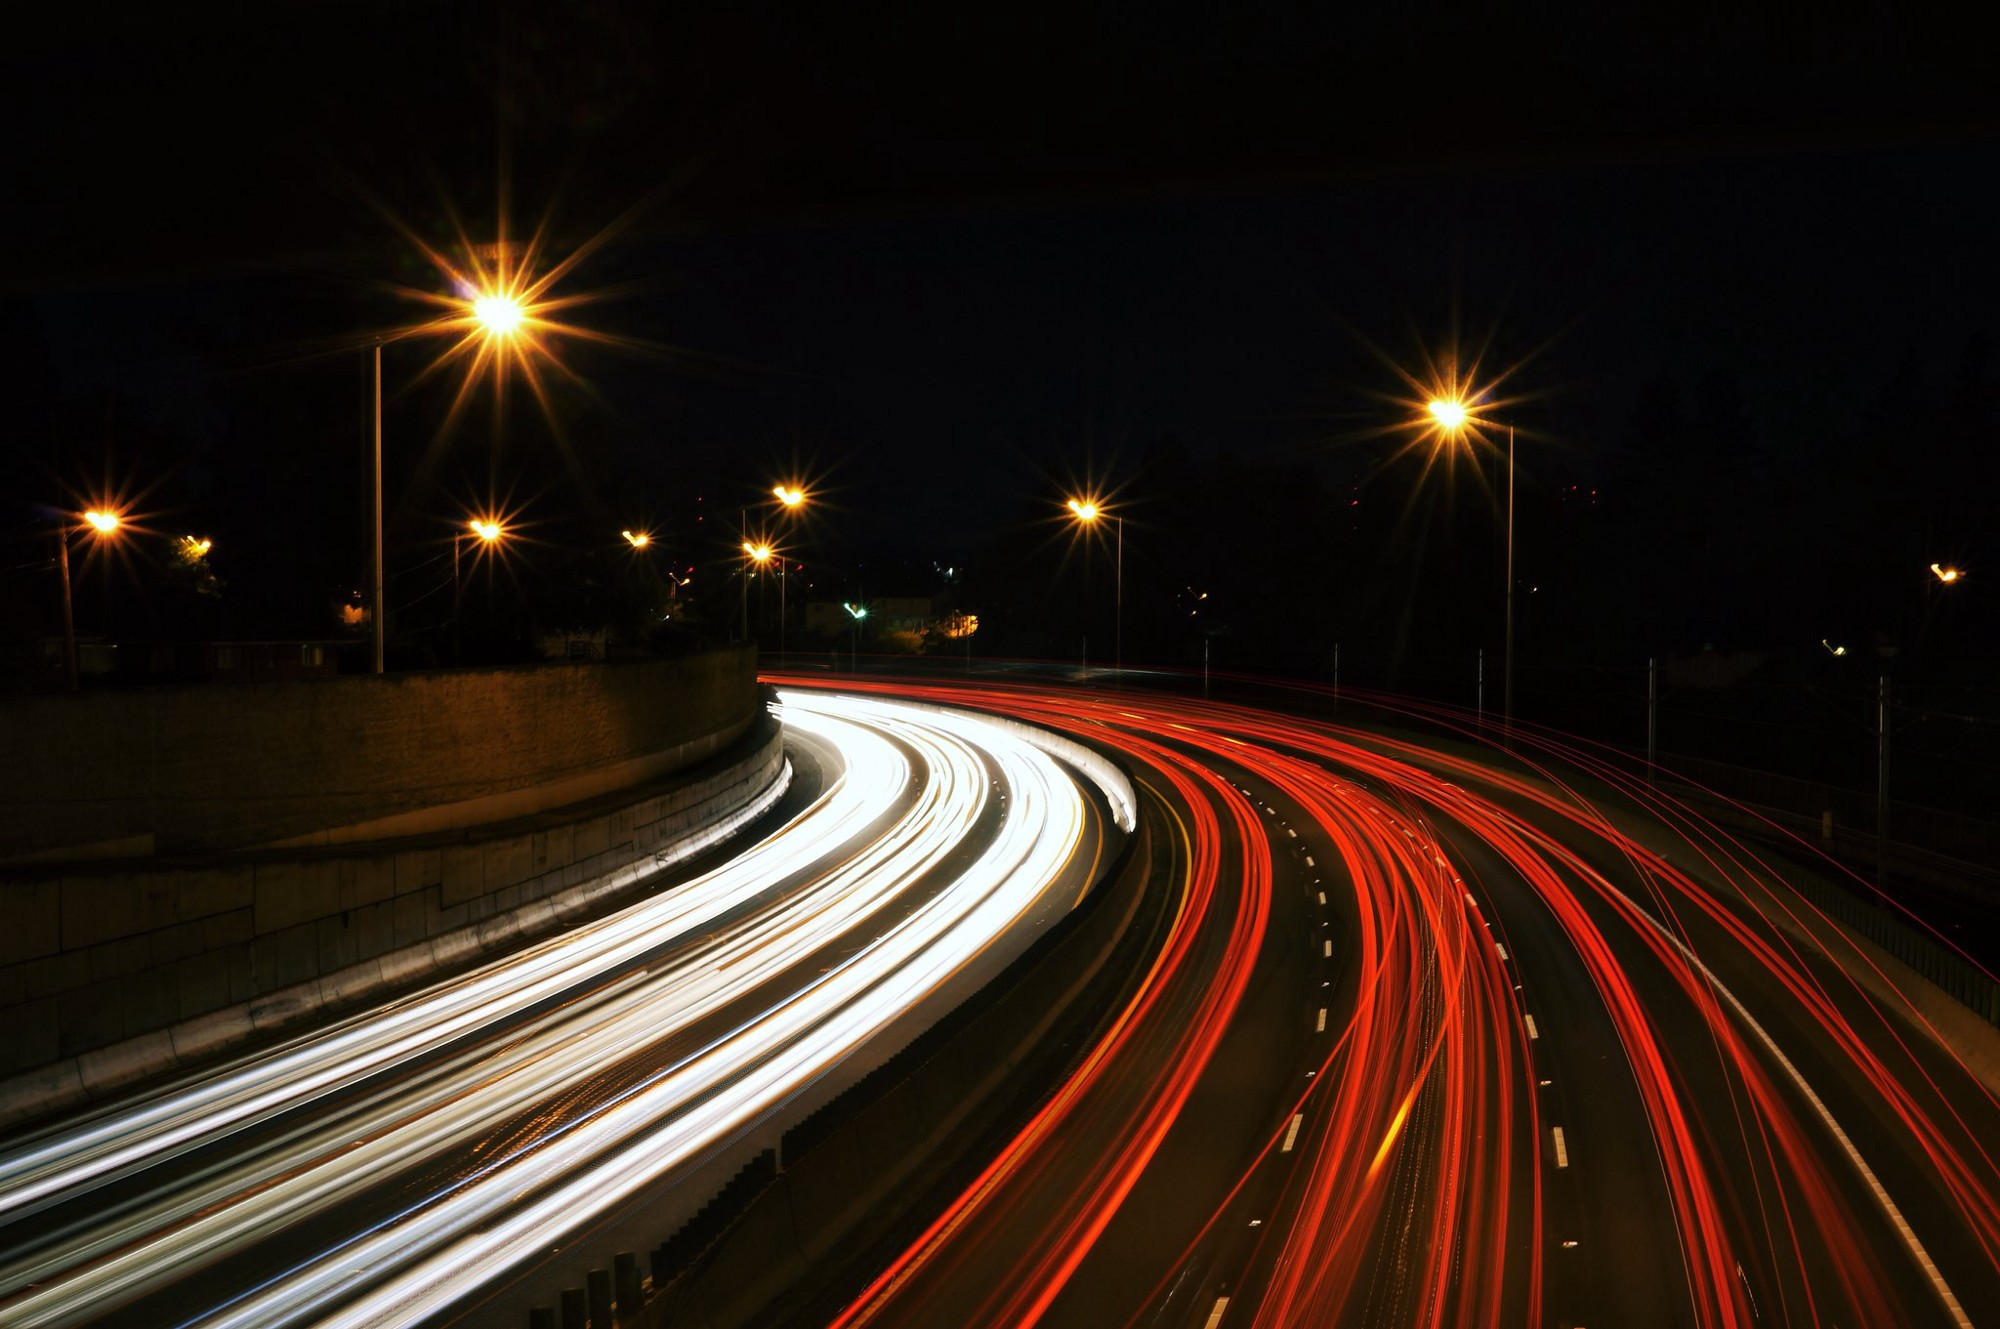 Long exposure image of a highway at night featuring red and white streaks of headlights merging into single rays of light above street lamps set against the night sky.